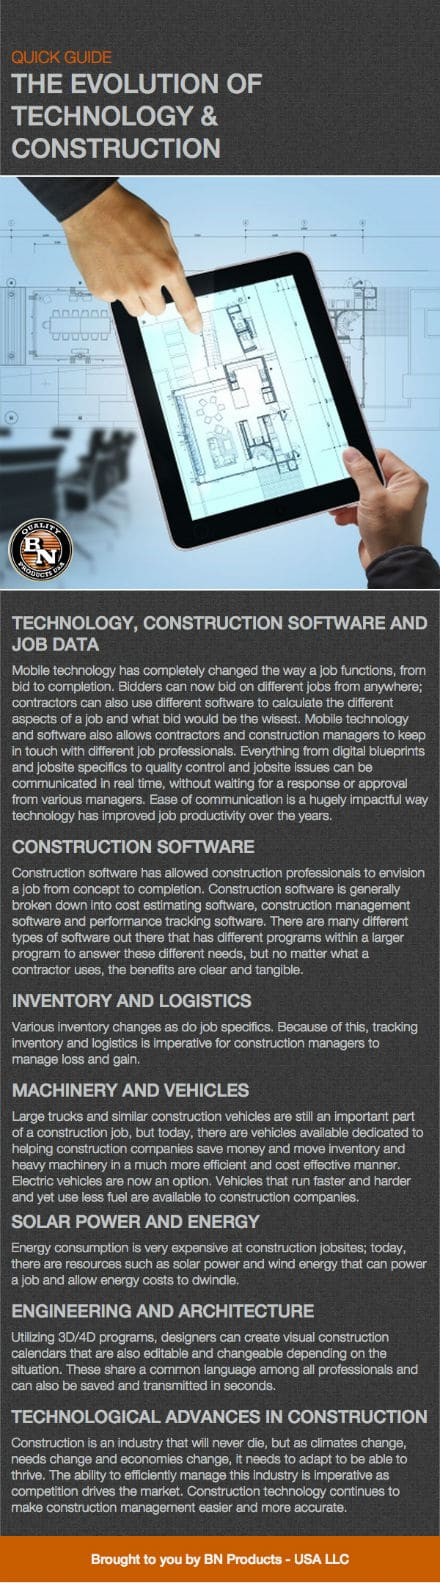 evolution of technology & construction